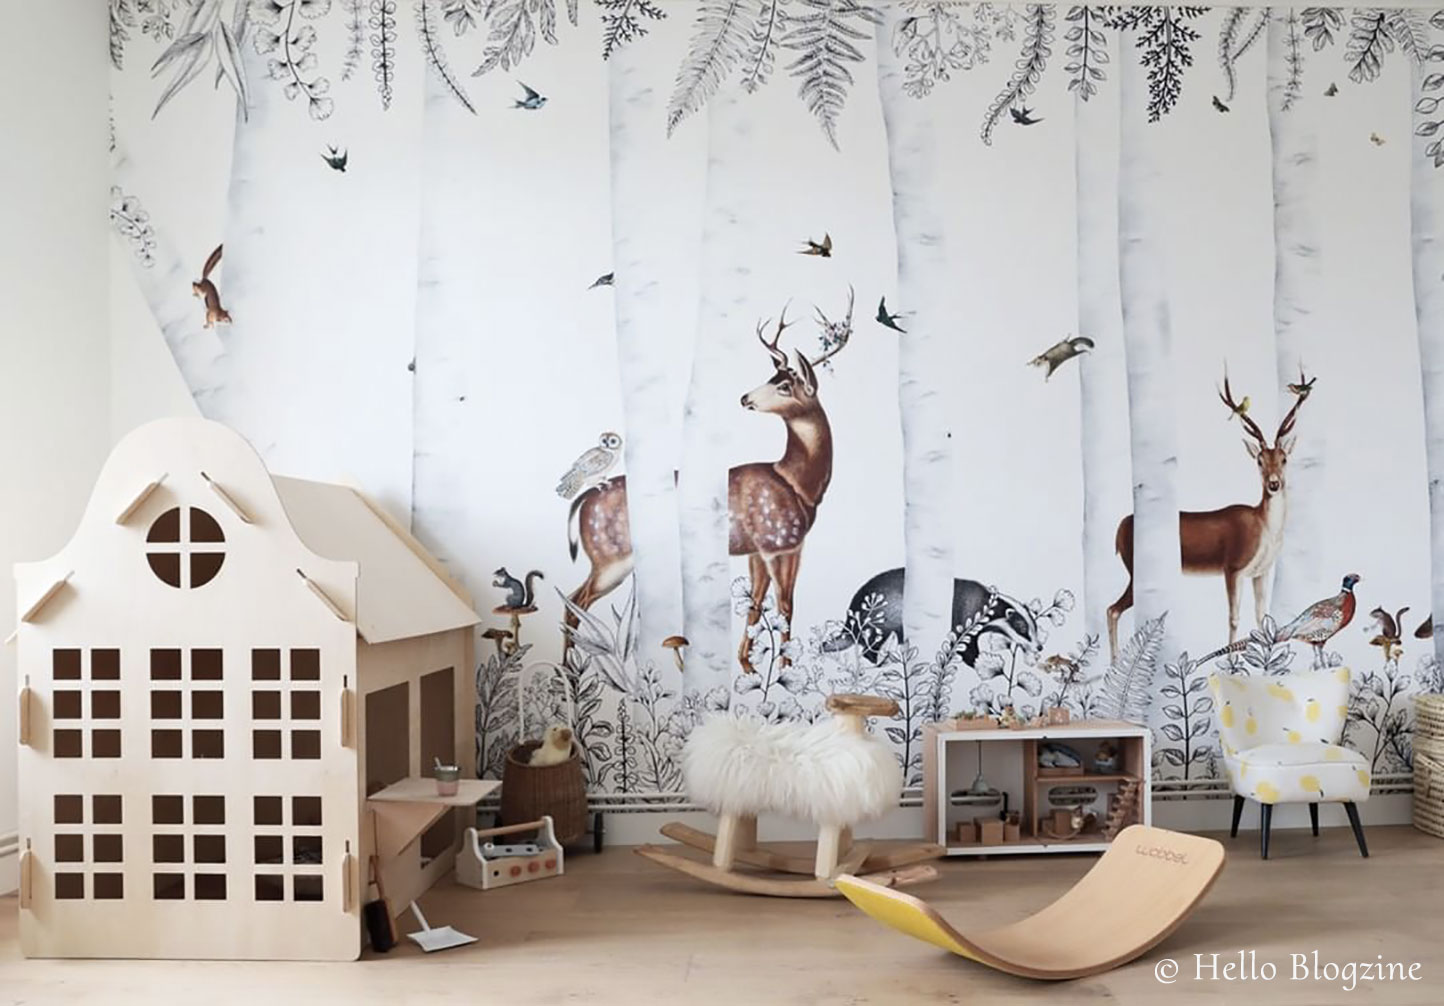 Wallpaper for kidsroom - Forest animals - Woody Chesnut from Les Dominotiers - © Helllo Blogzine